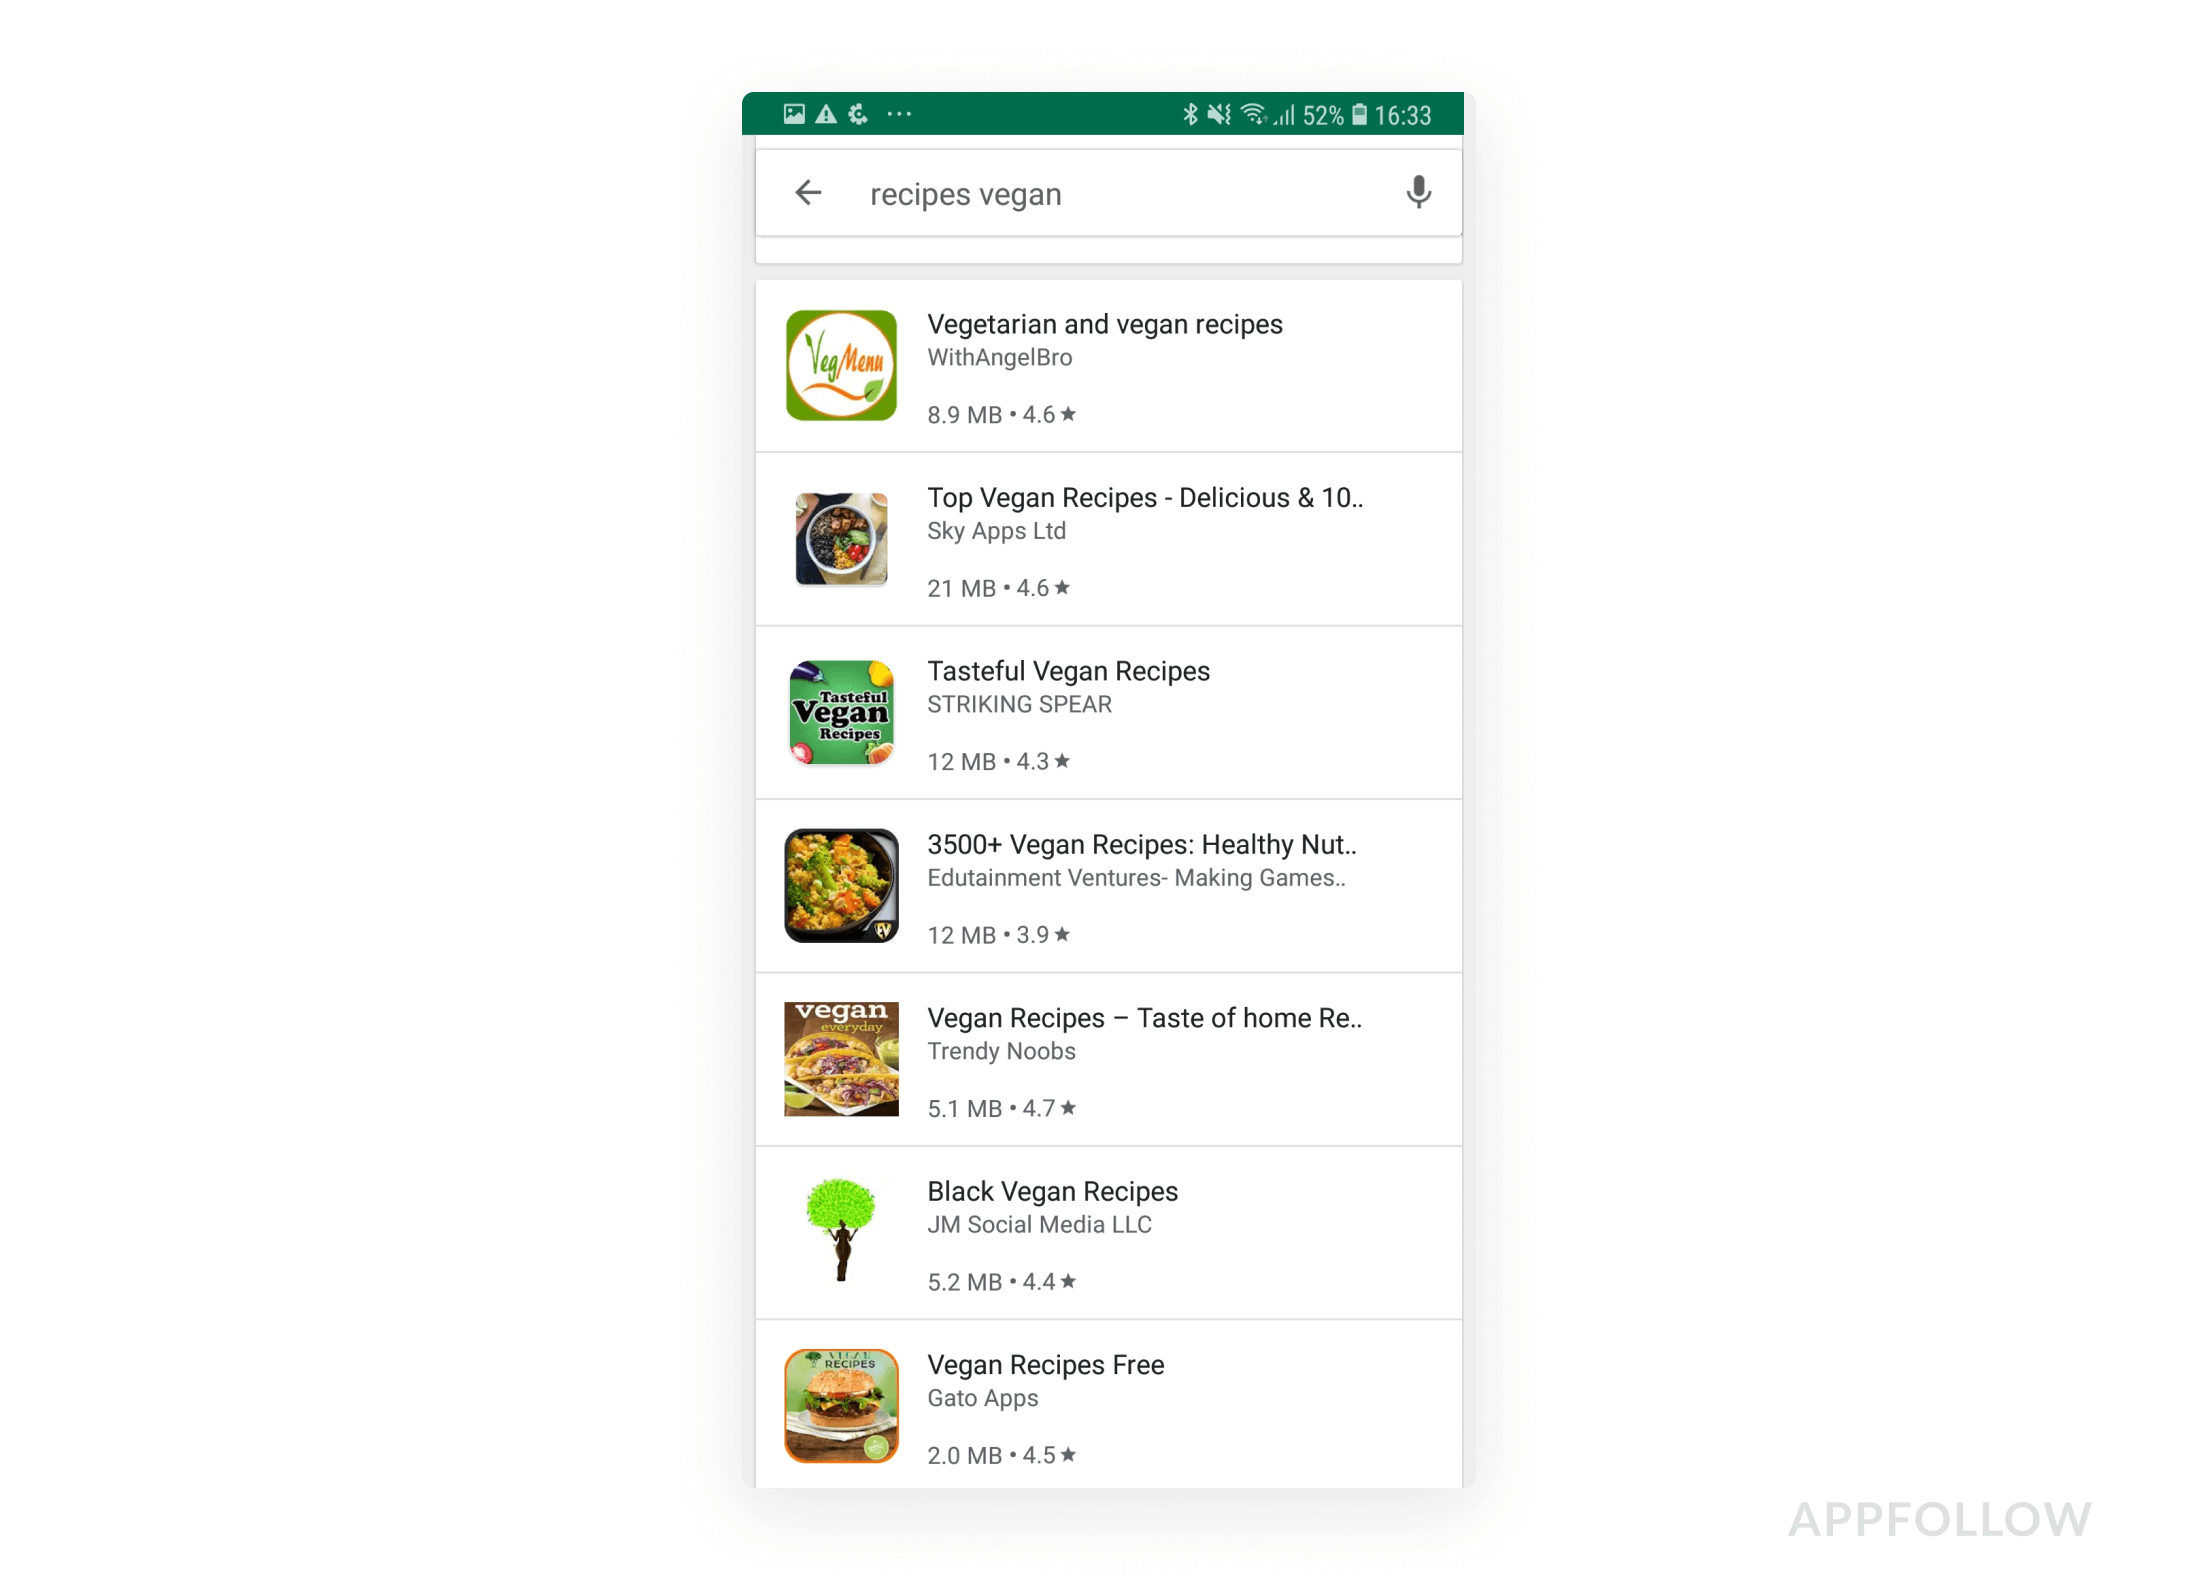 Search results page on Google Play